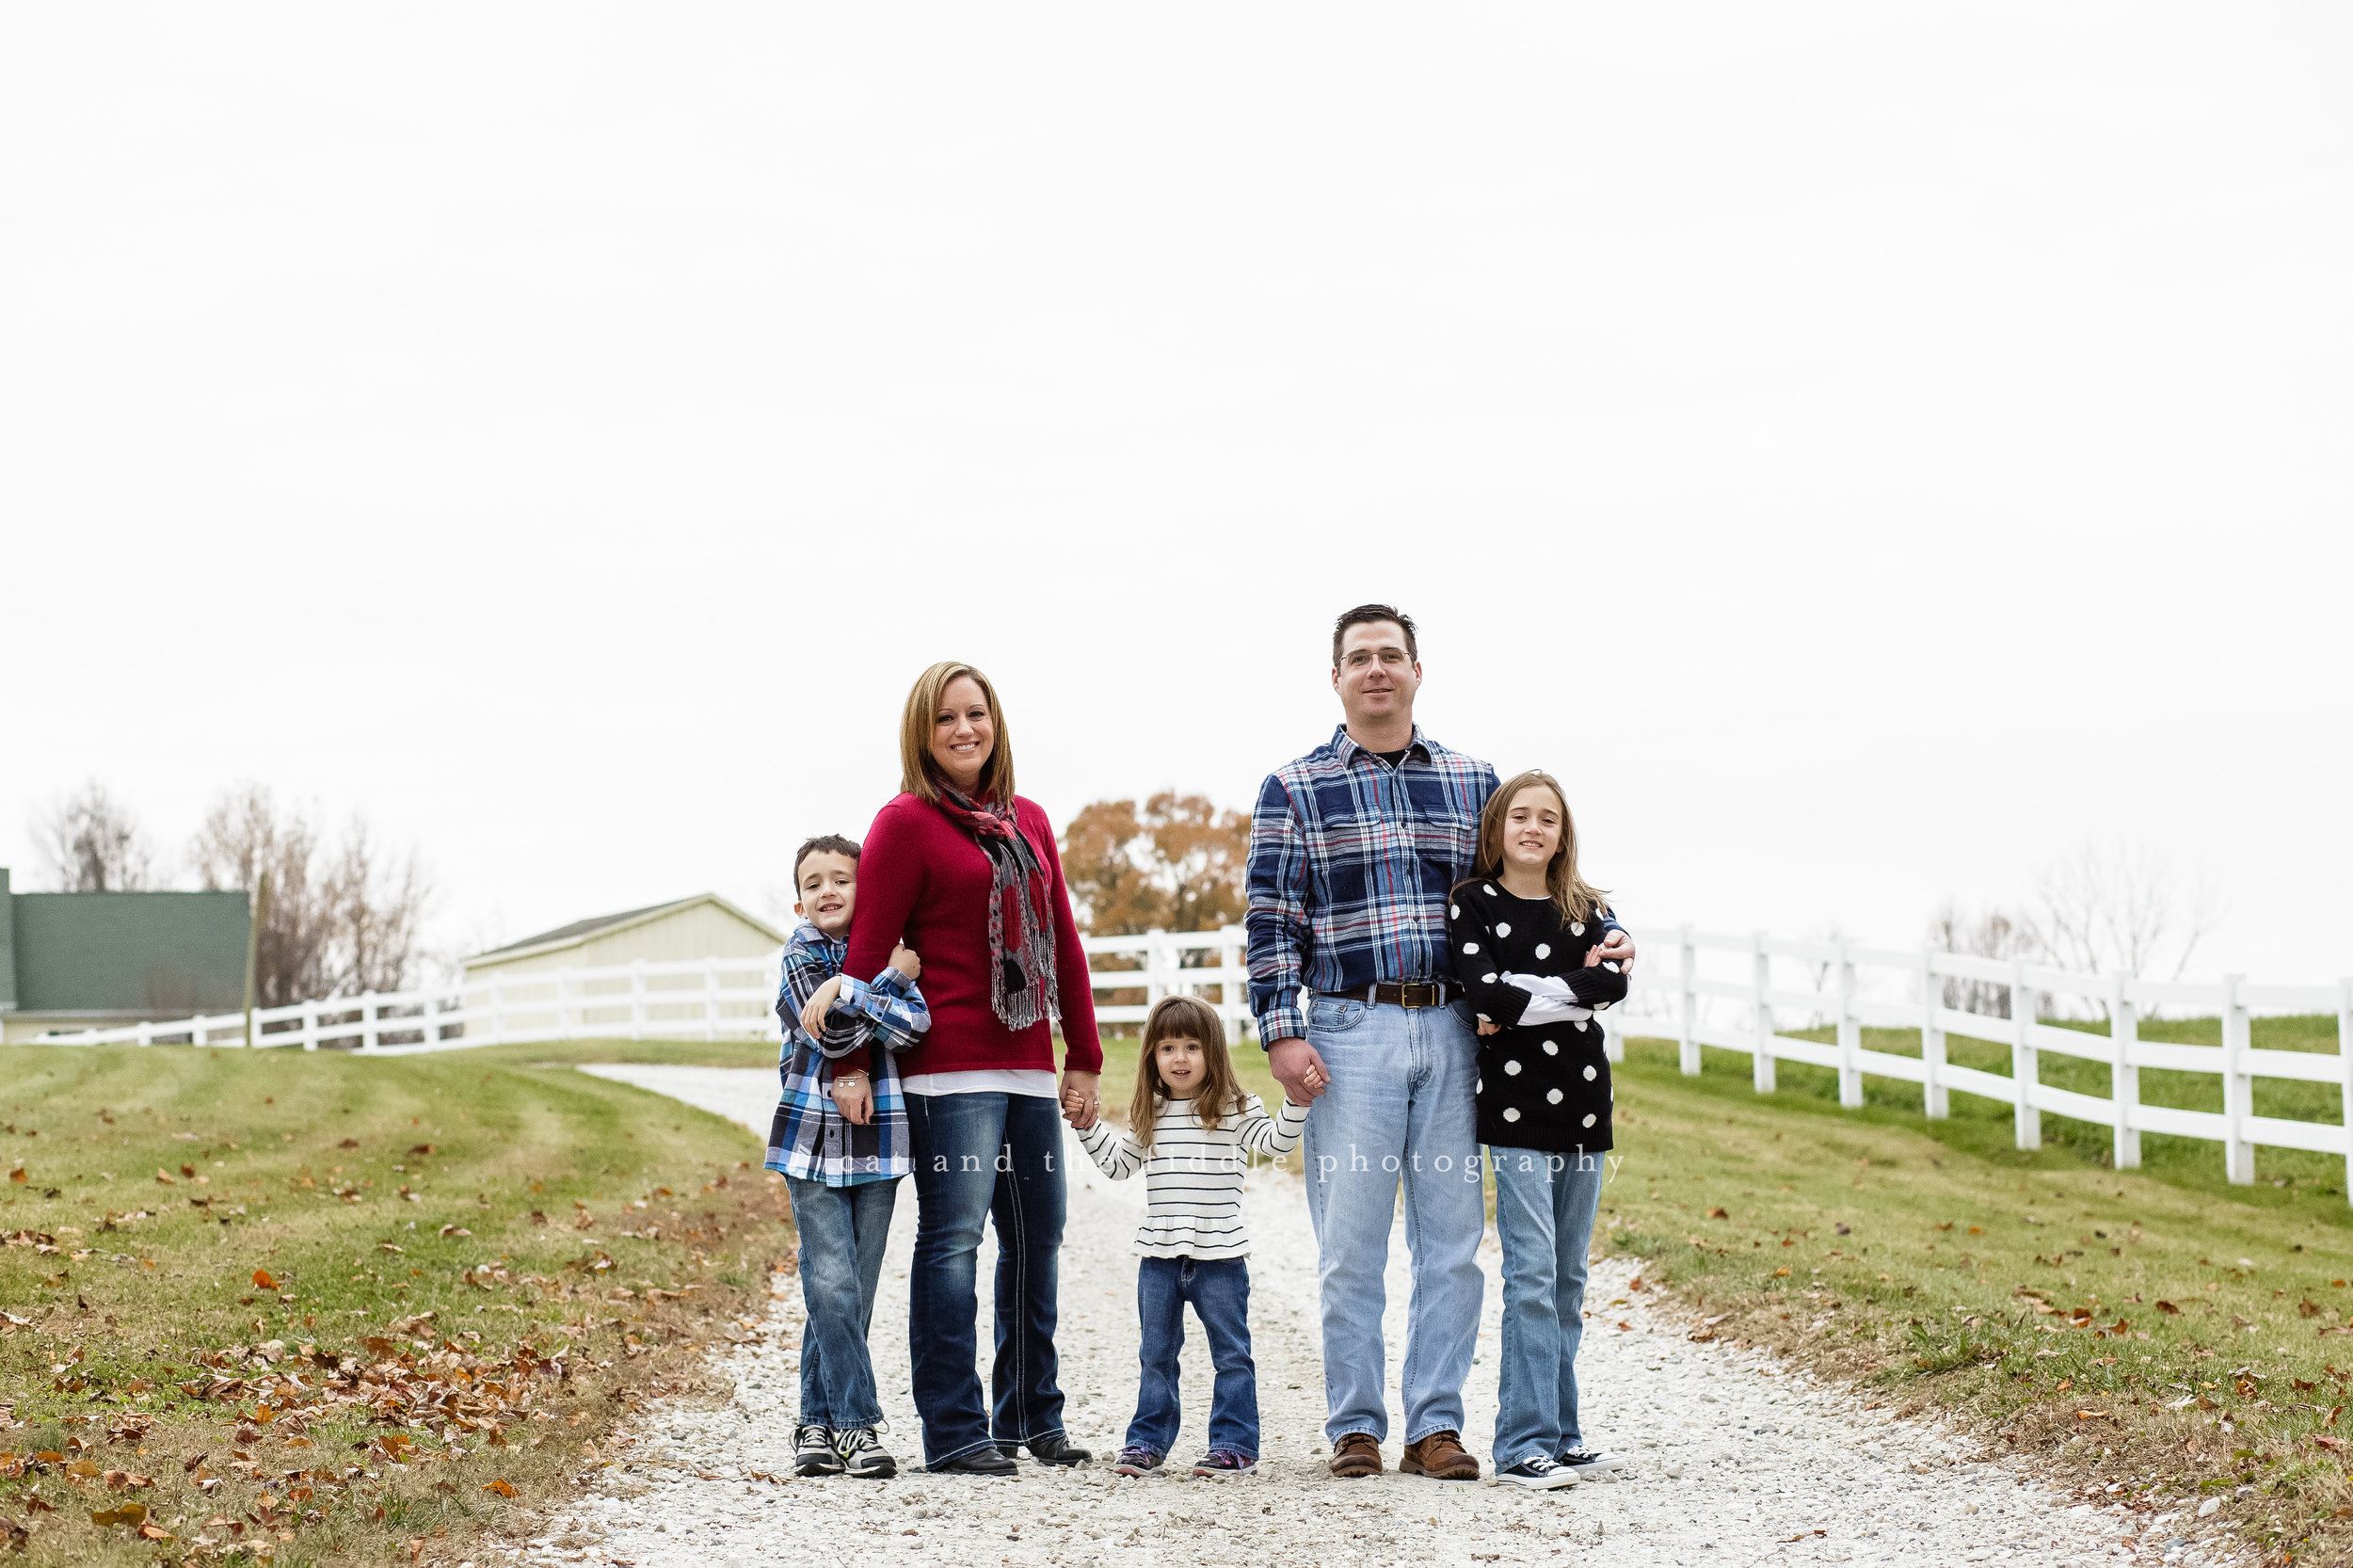 South County Annapolis Family Photographer 7.jpg